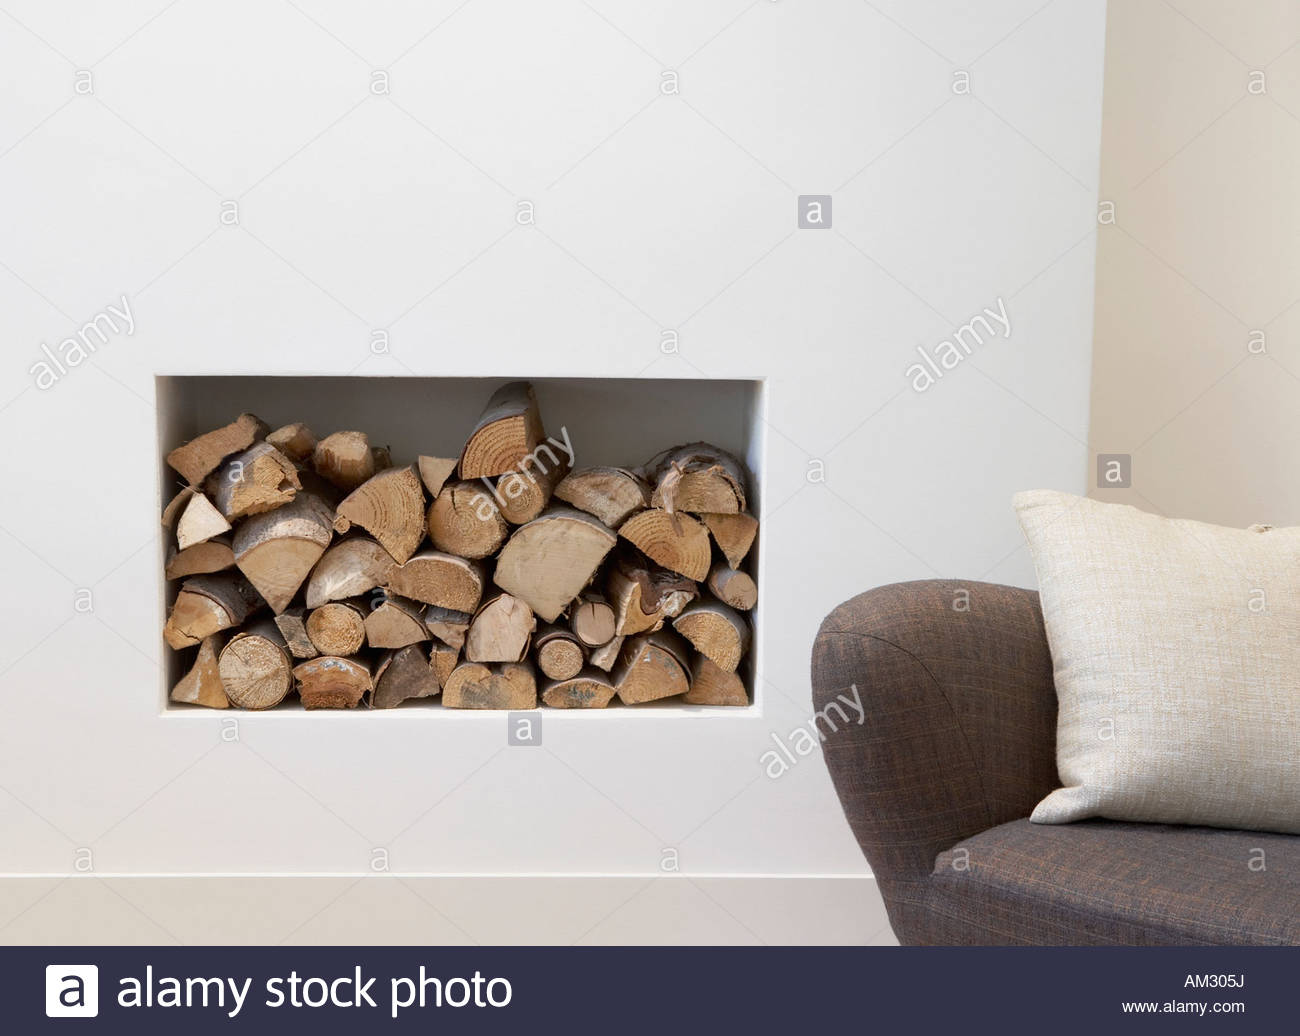 Pile of wood beside chair indoors - Stock Image